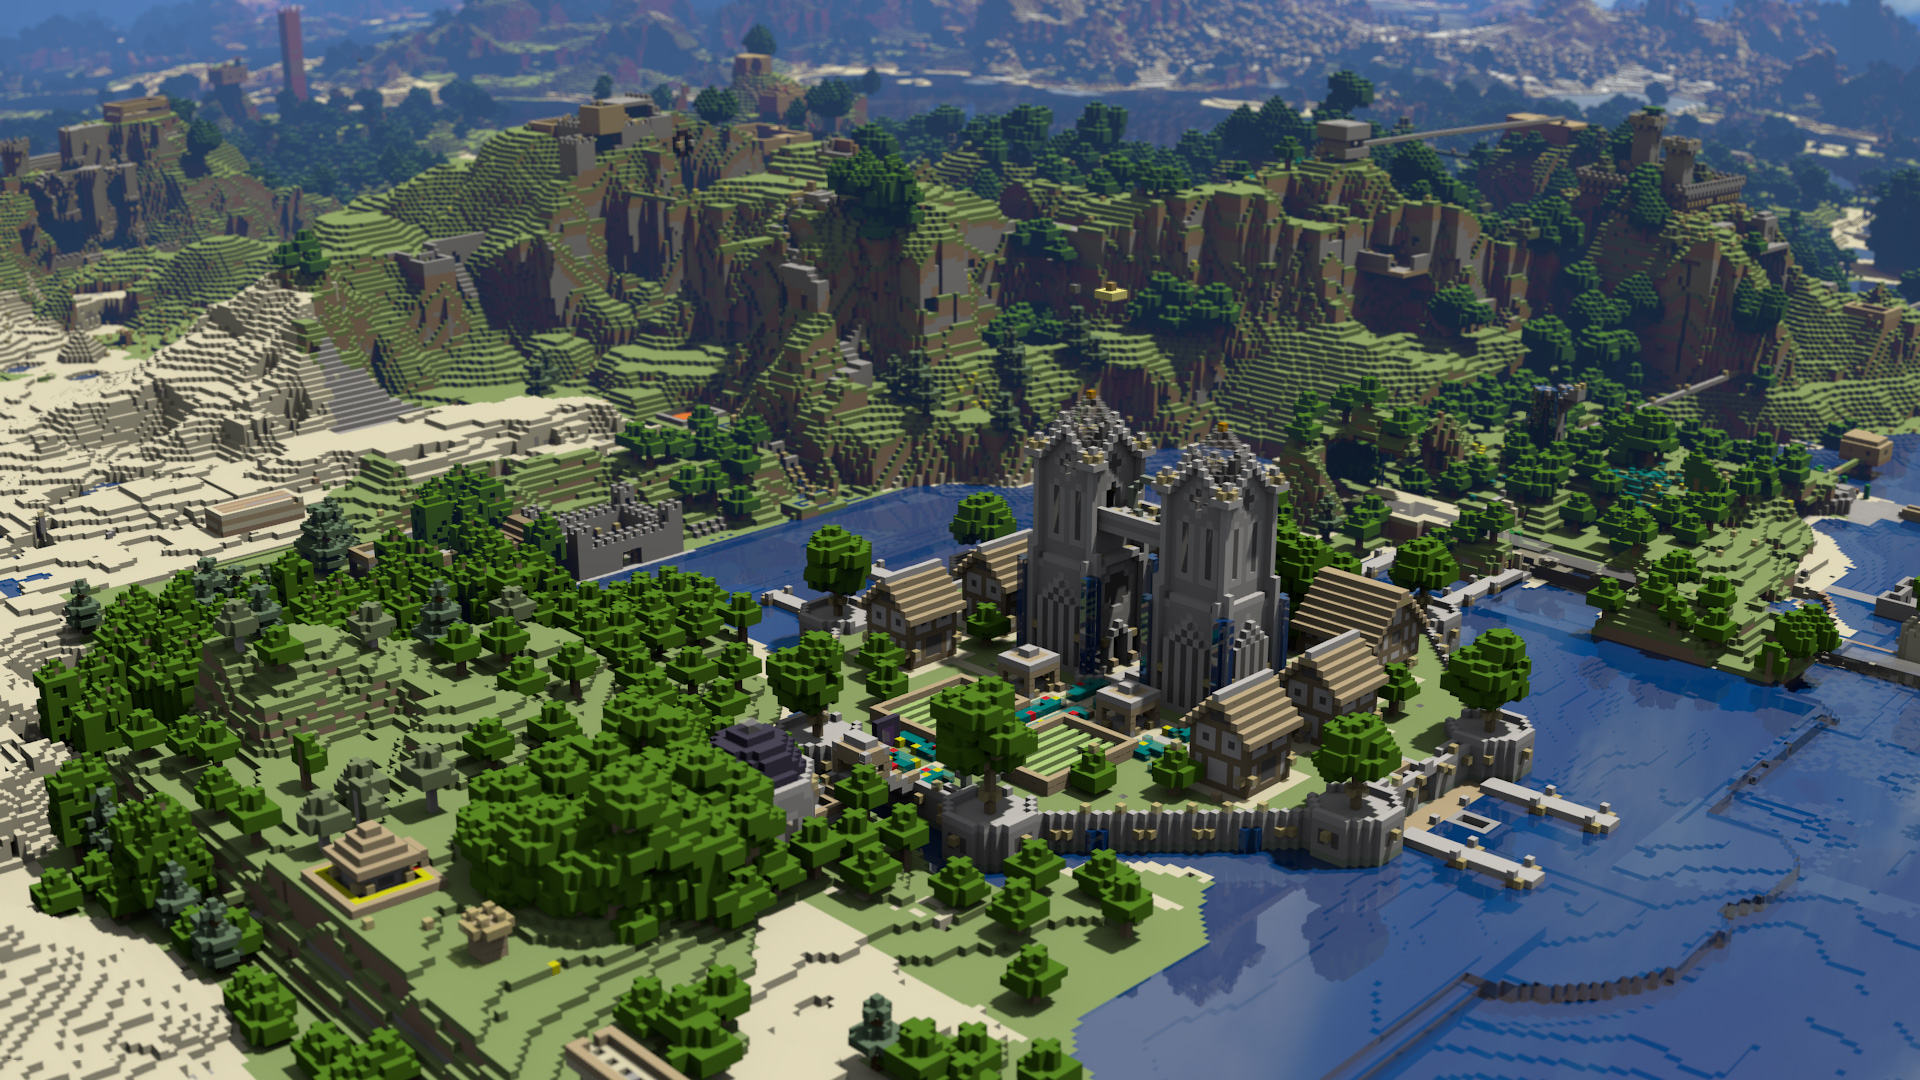 minecraft hd desktop backgrounds 1920x1080 land 1920x1080